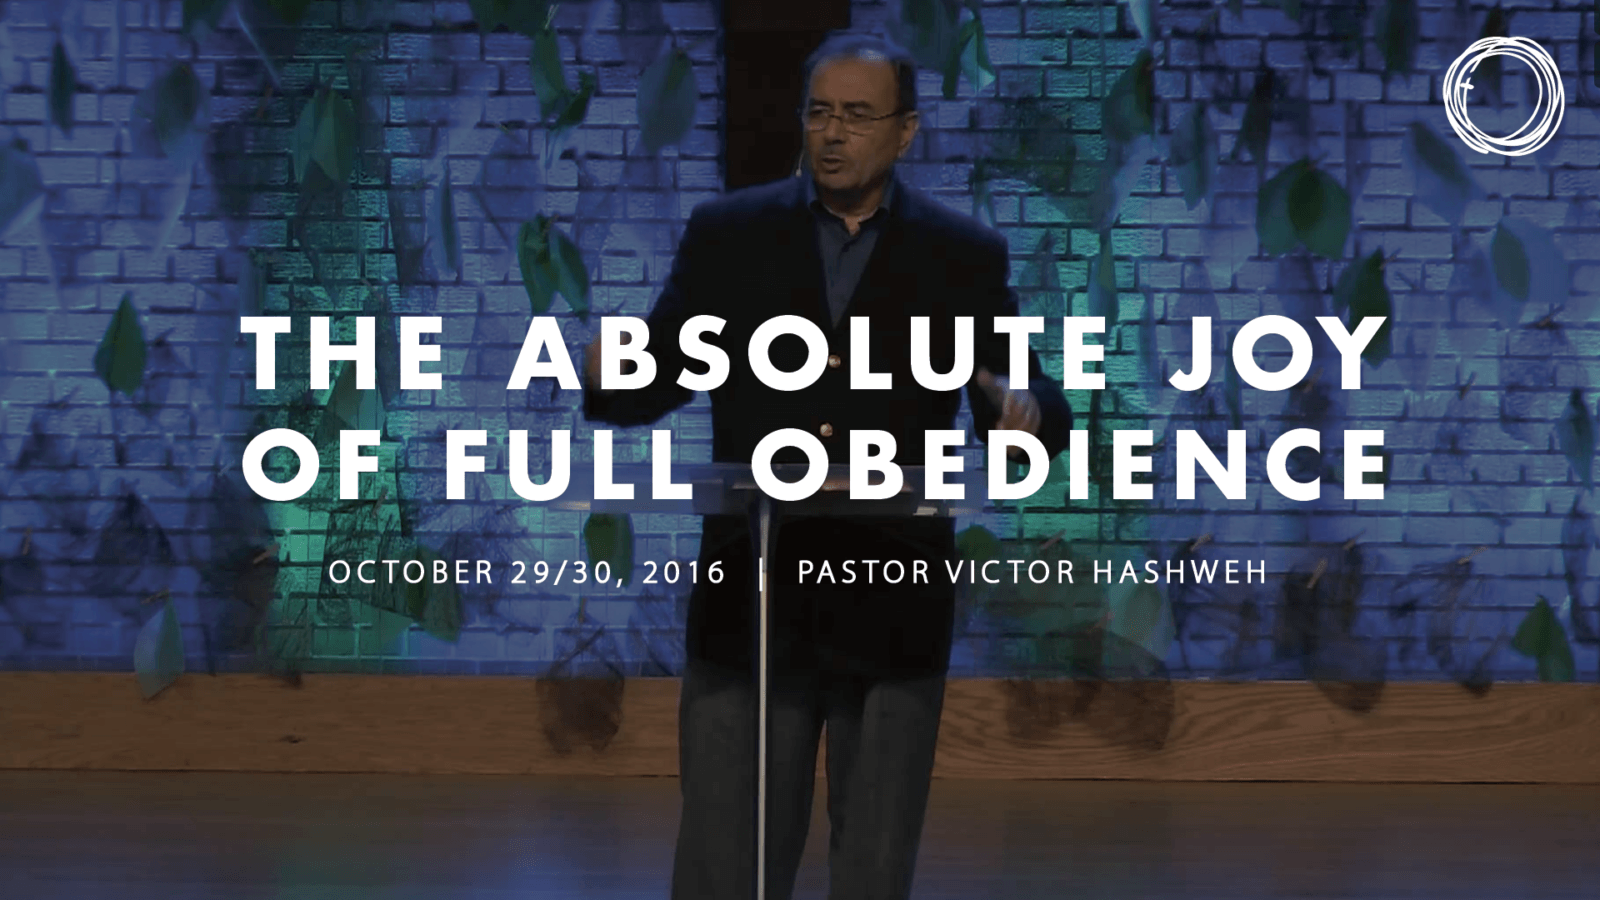 The Absolute Joy of Full Obedience